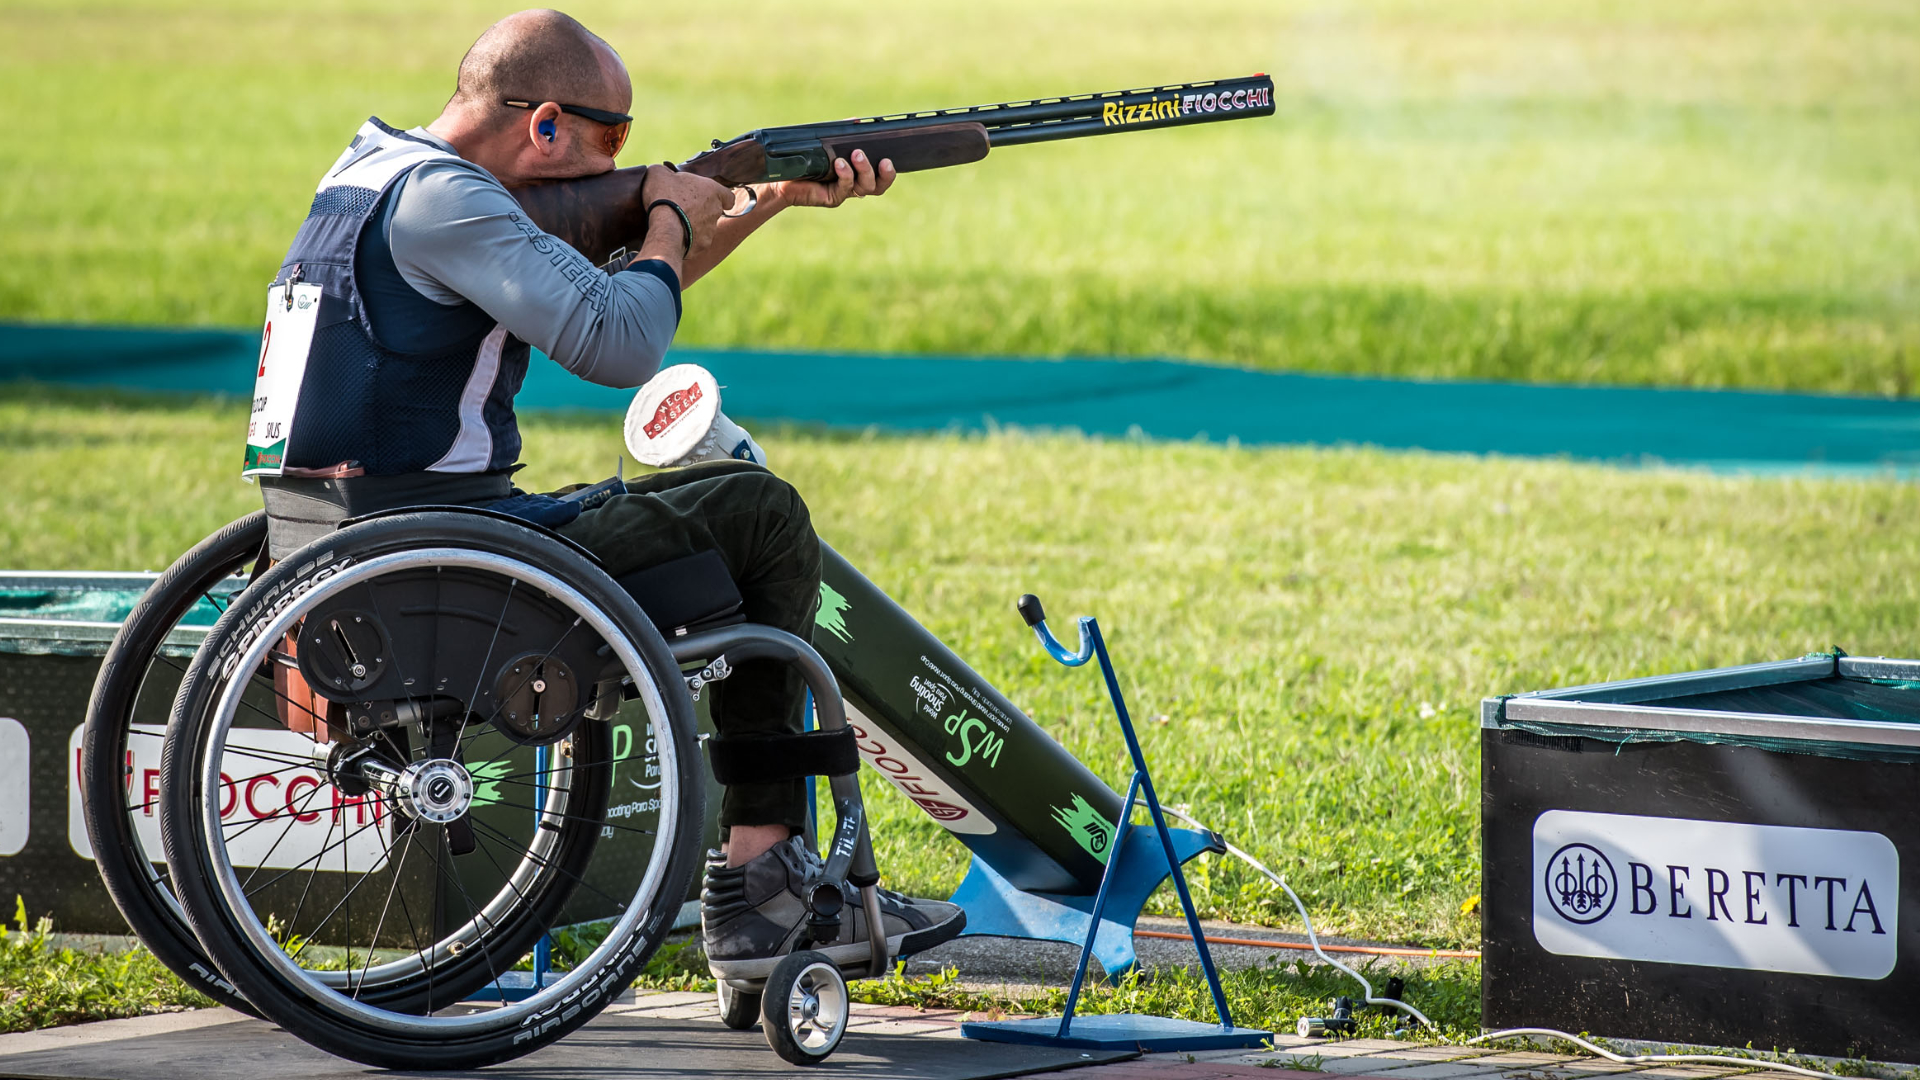 FIOCCHI WILL SPONSOR THE FIRST PARA TRAP WORLD CHAMPIONSHIP